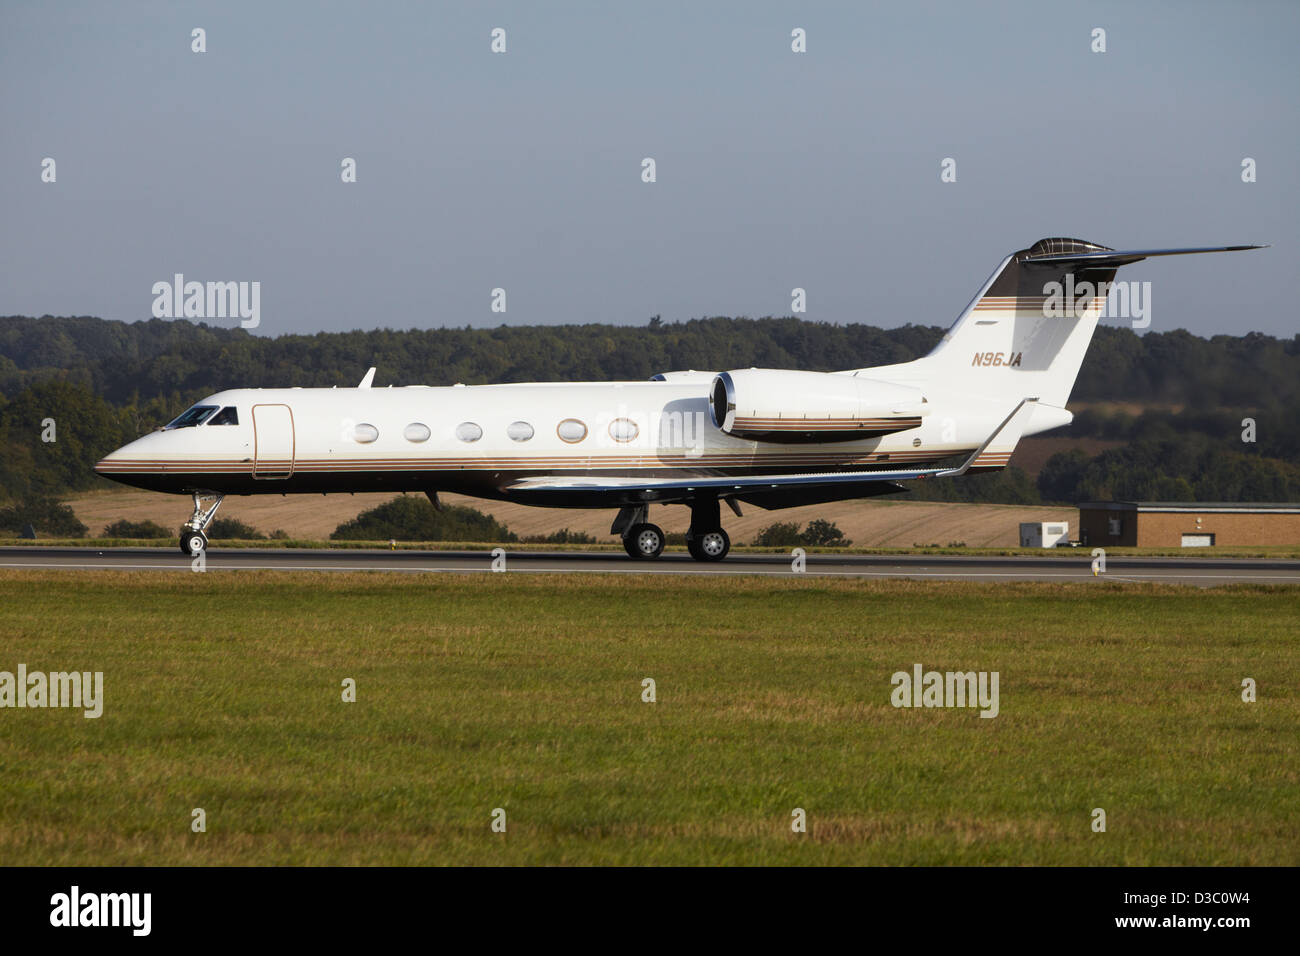 Gulfstream G-IV taking off from runway - Stock Image